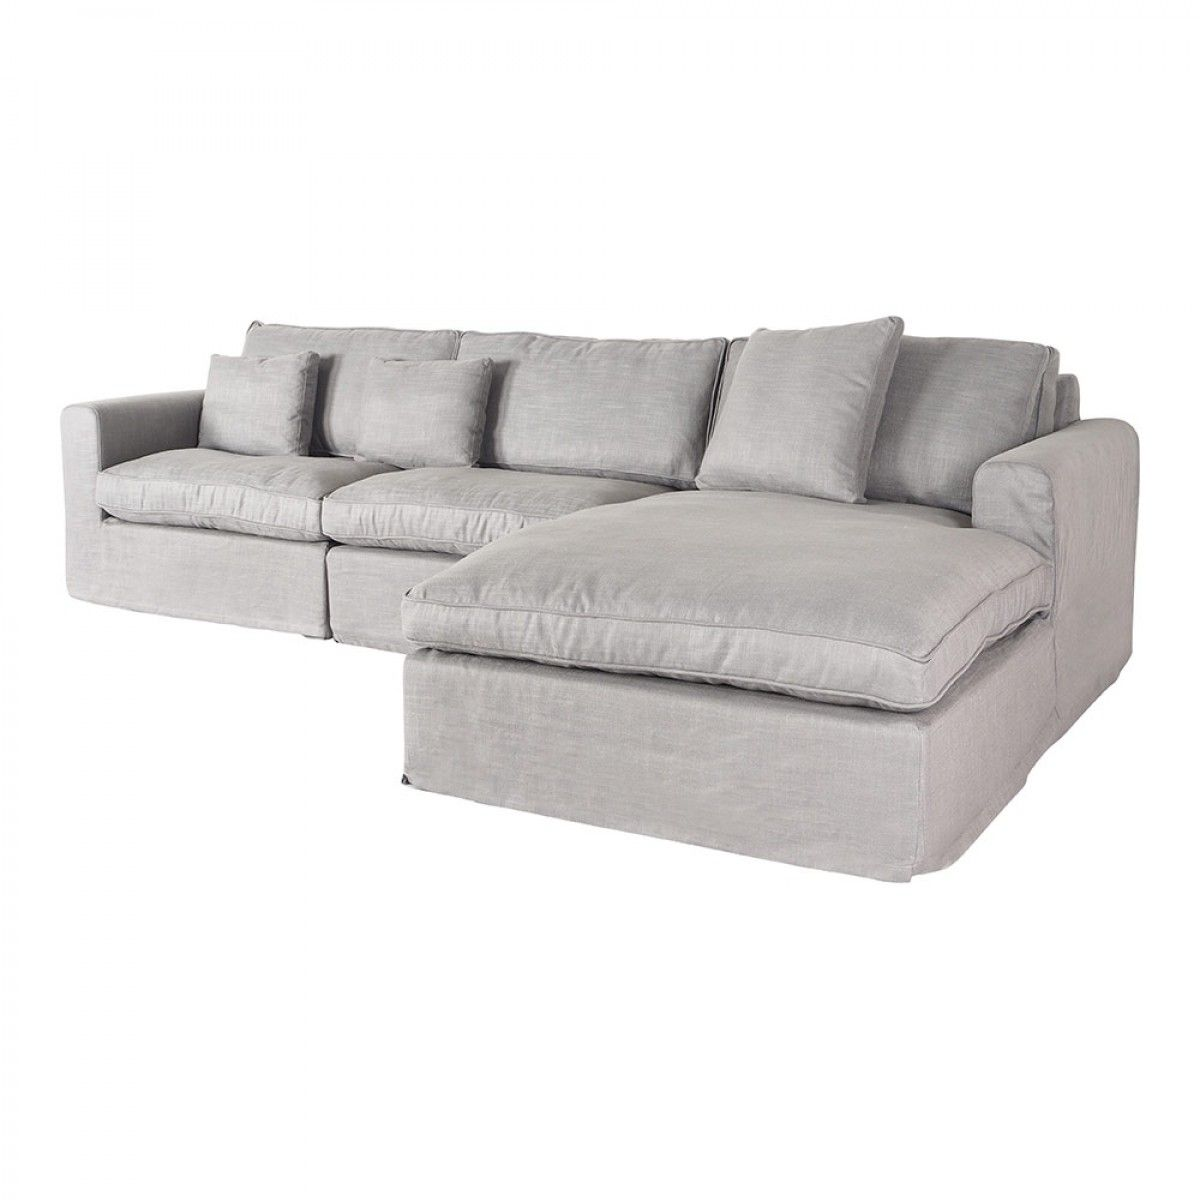 Huxley 3 Seater Chaise Rhf Grey Linen Fabric Lounges Upholstery Grey Linen Sofa Gray Linen Chaise